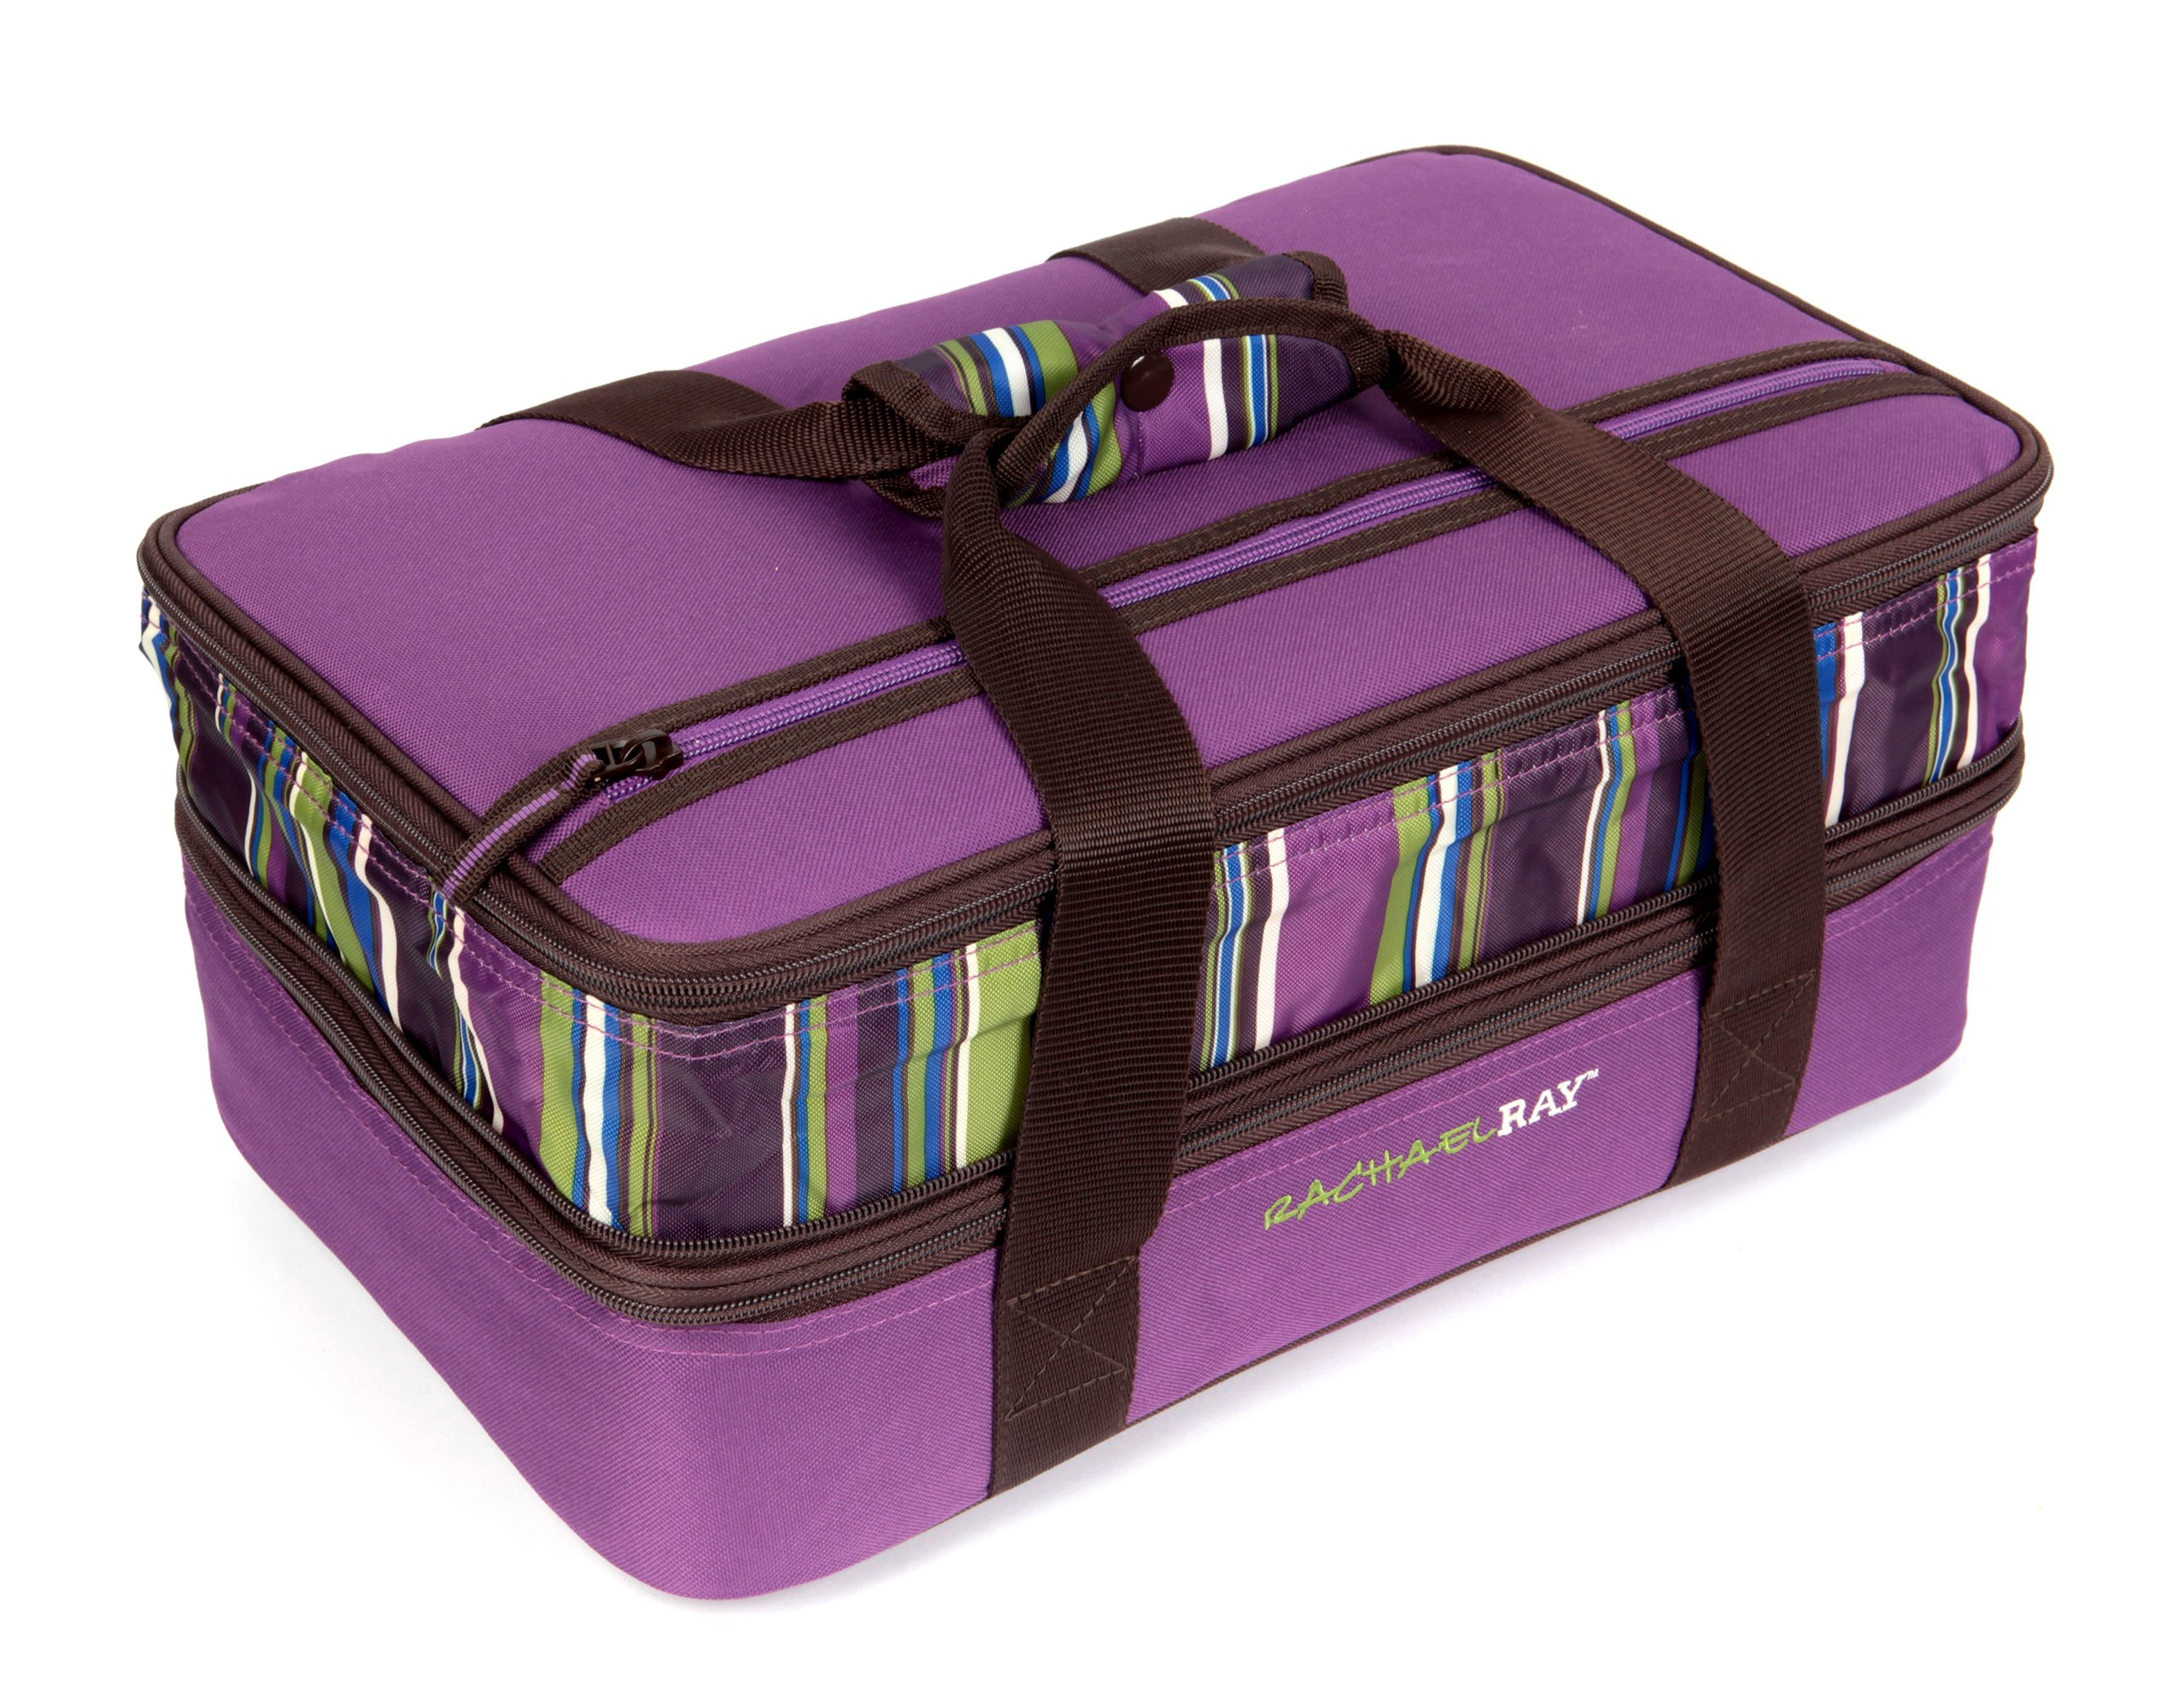 Rachael Ray Expandable Lasagna Lugger, Double Casserole Carrier for Potluck Parties, Picnics, Tailgates - Fits two 9''x13'' Casserole Dishes, Purple